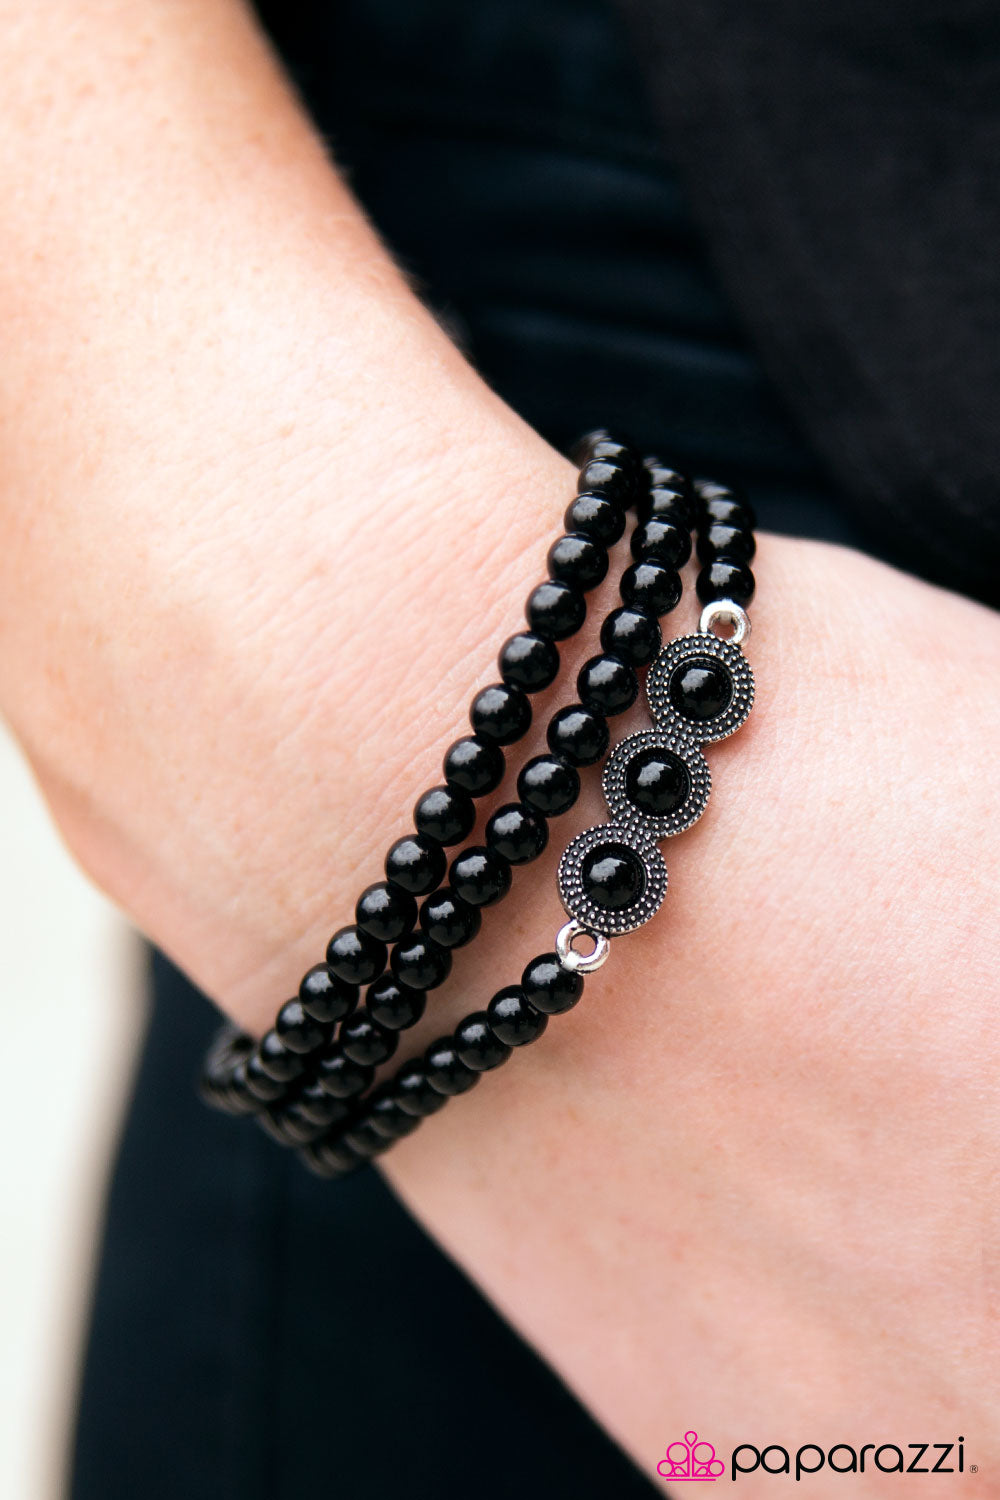 Happy Trails - Black - Paparazzi bracelet